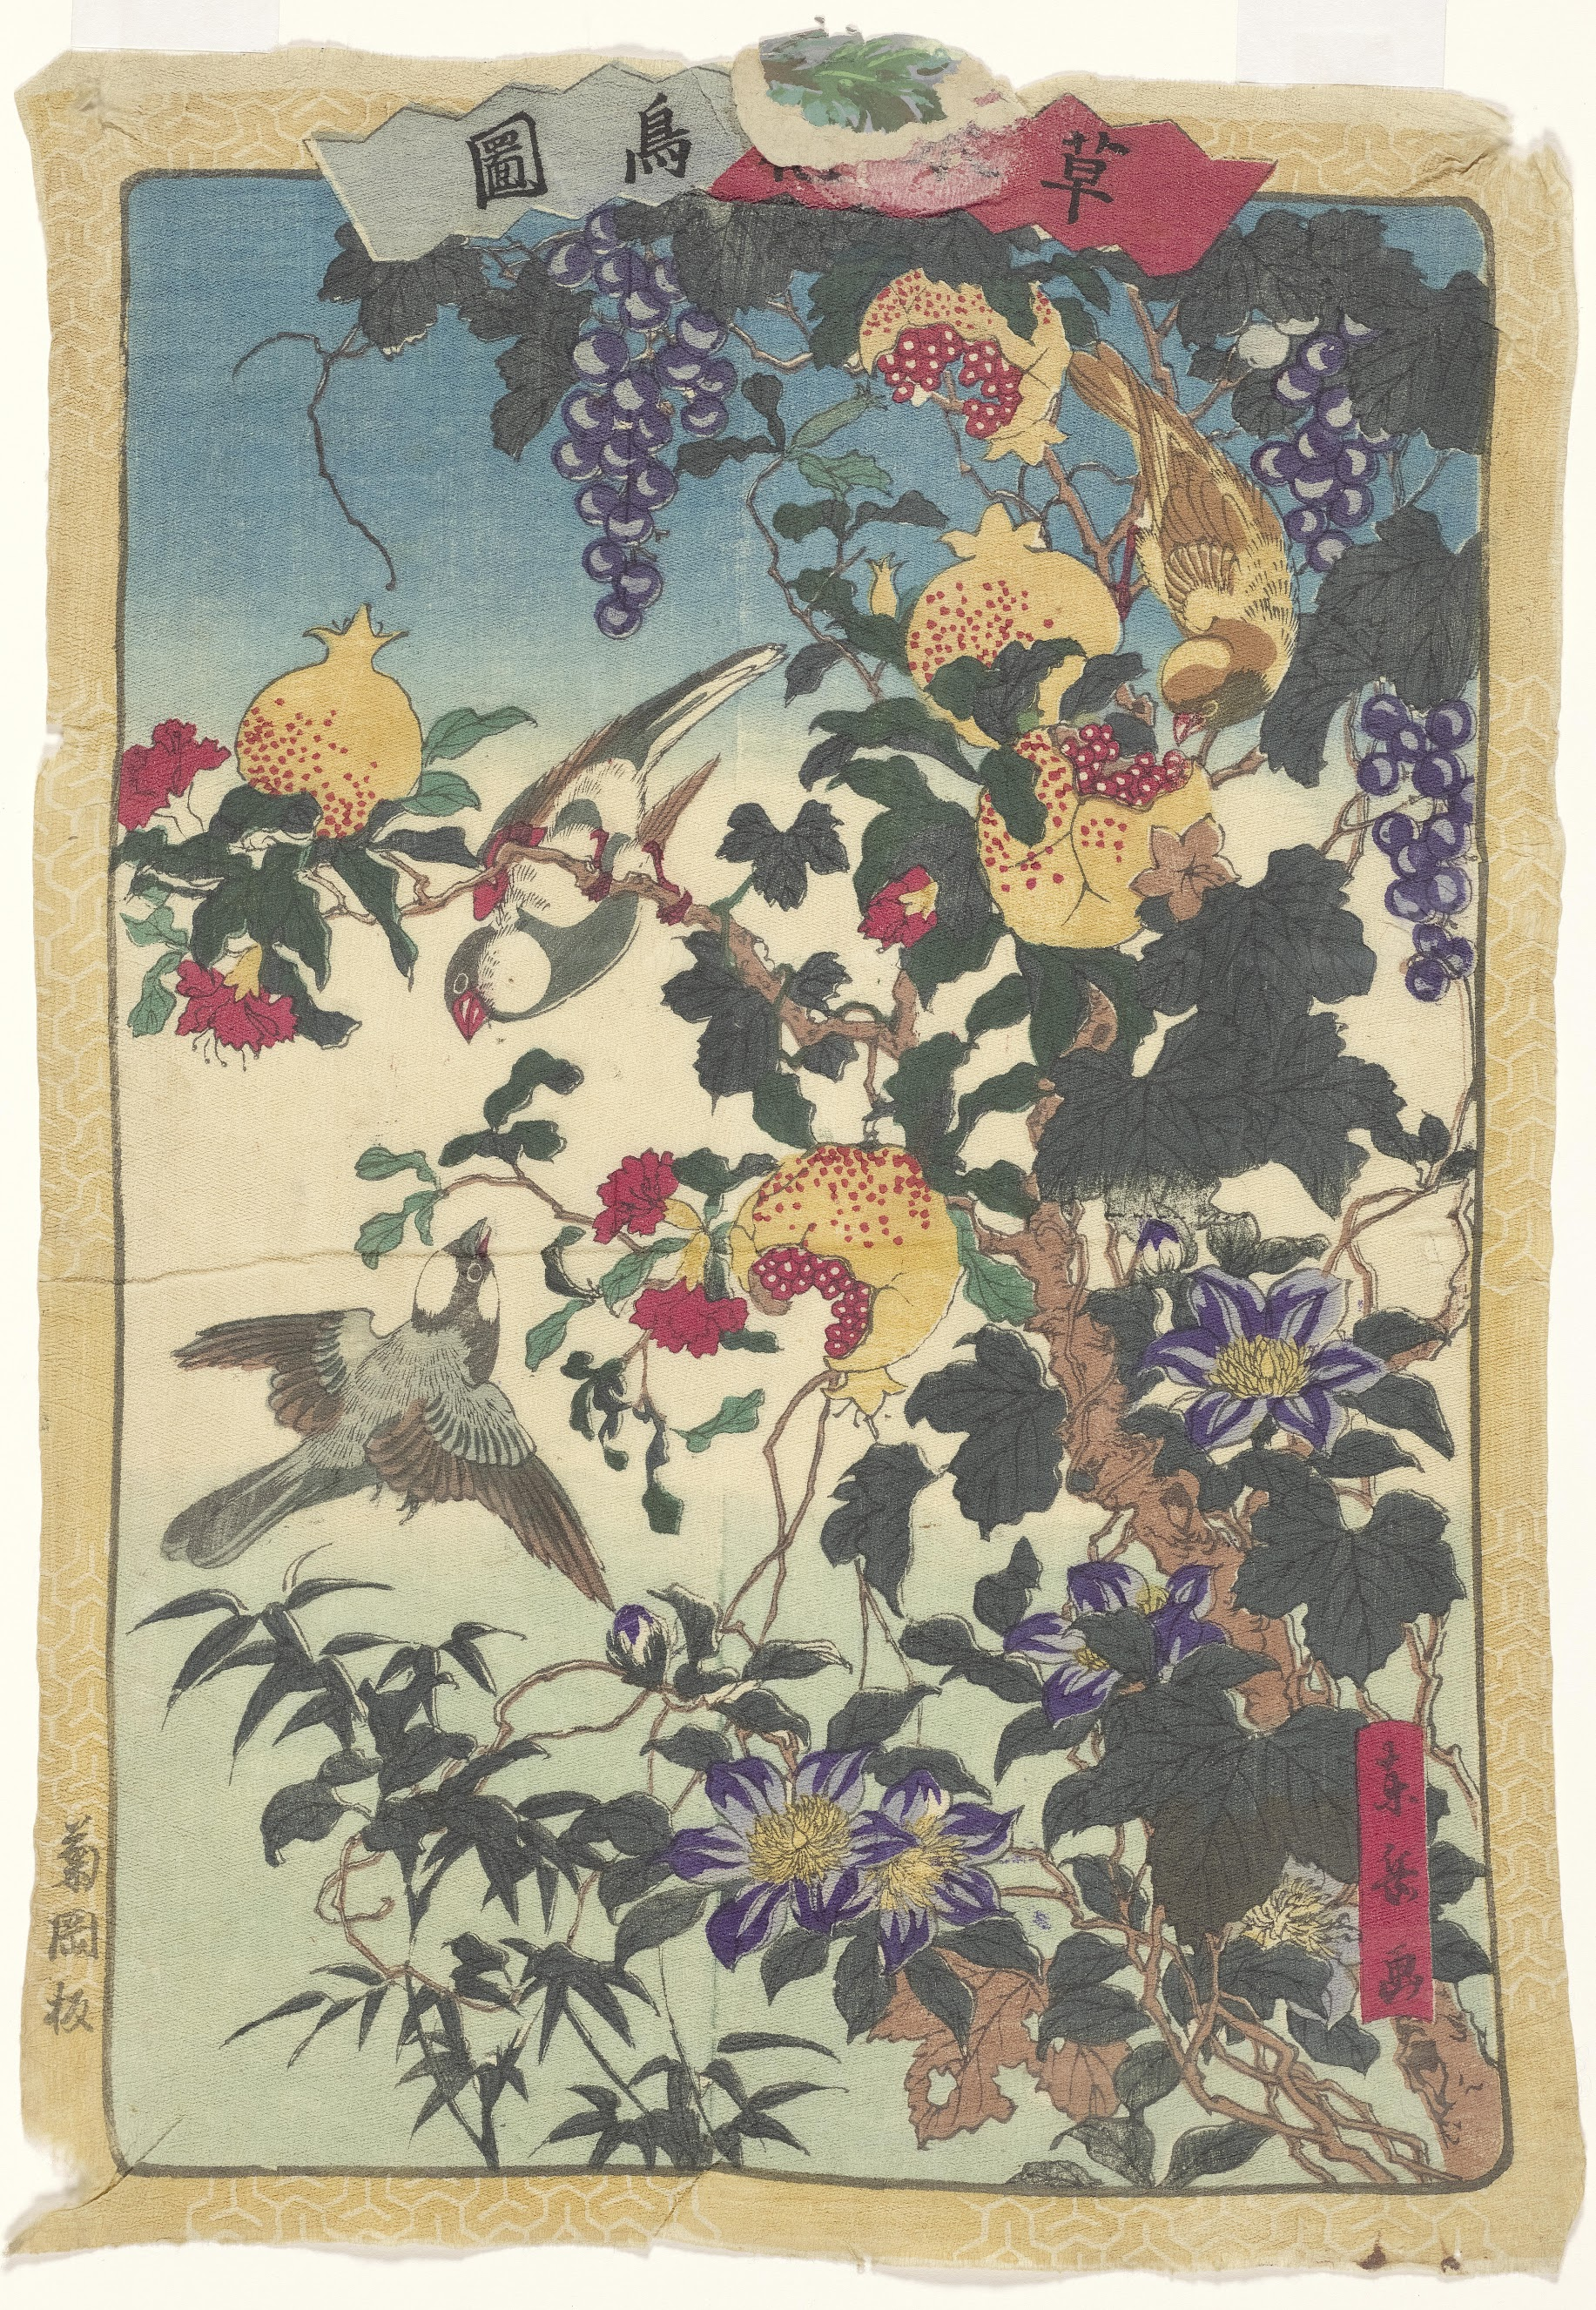 Finches and Pomegranates, from the series Illustrations of Plants, Trees, Flowers and Birds Tokyo, c. 1875 Togaku